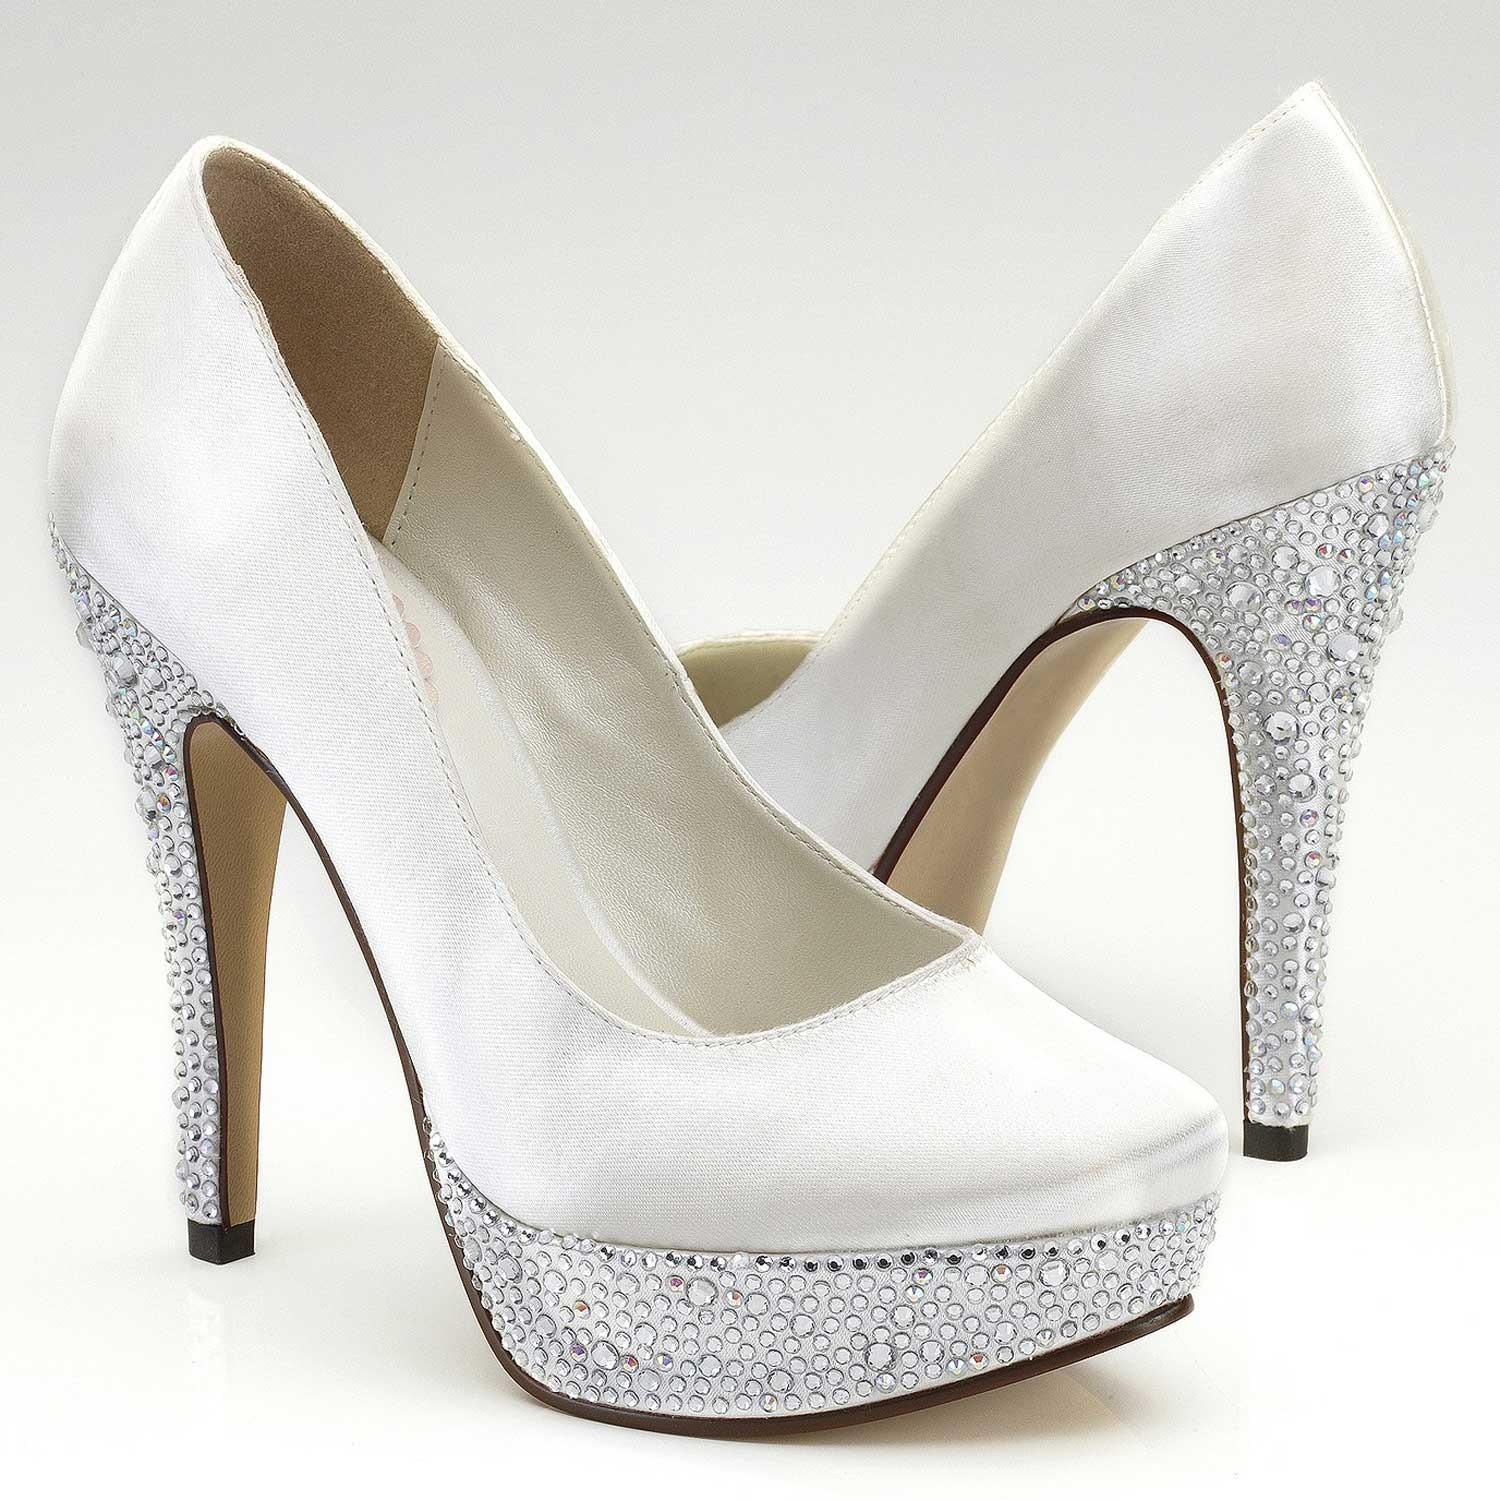 chaussures mariage bedazzle - Chaussure Mariage Compense